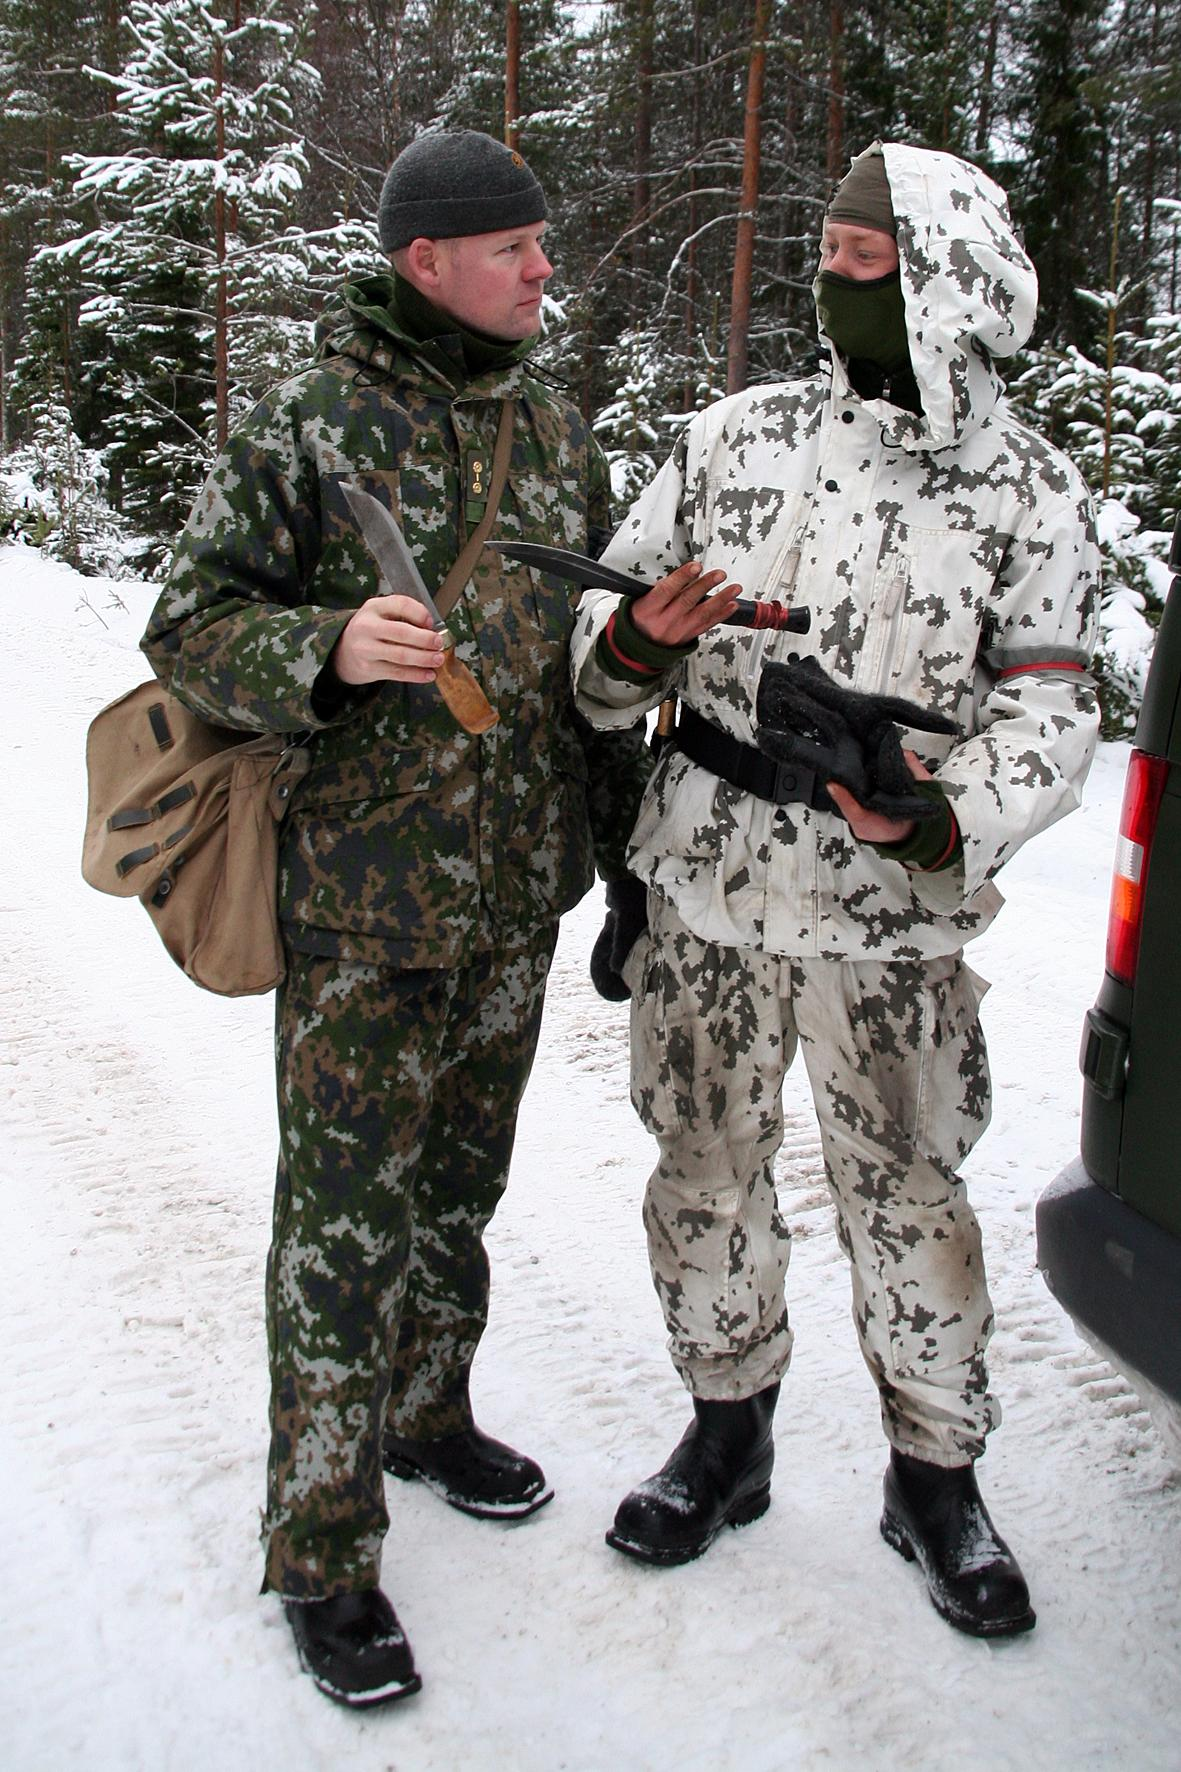 Luxembourg gets its own camo pattern! Finnish-winter-camo